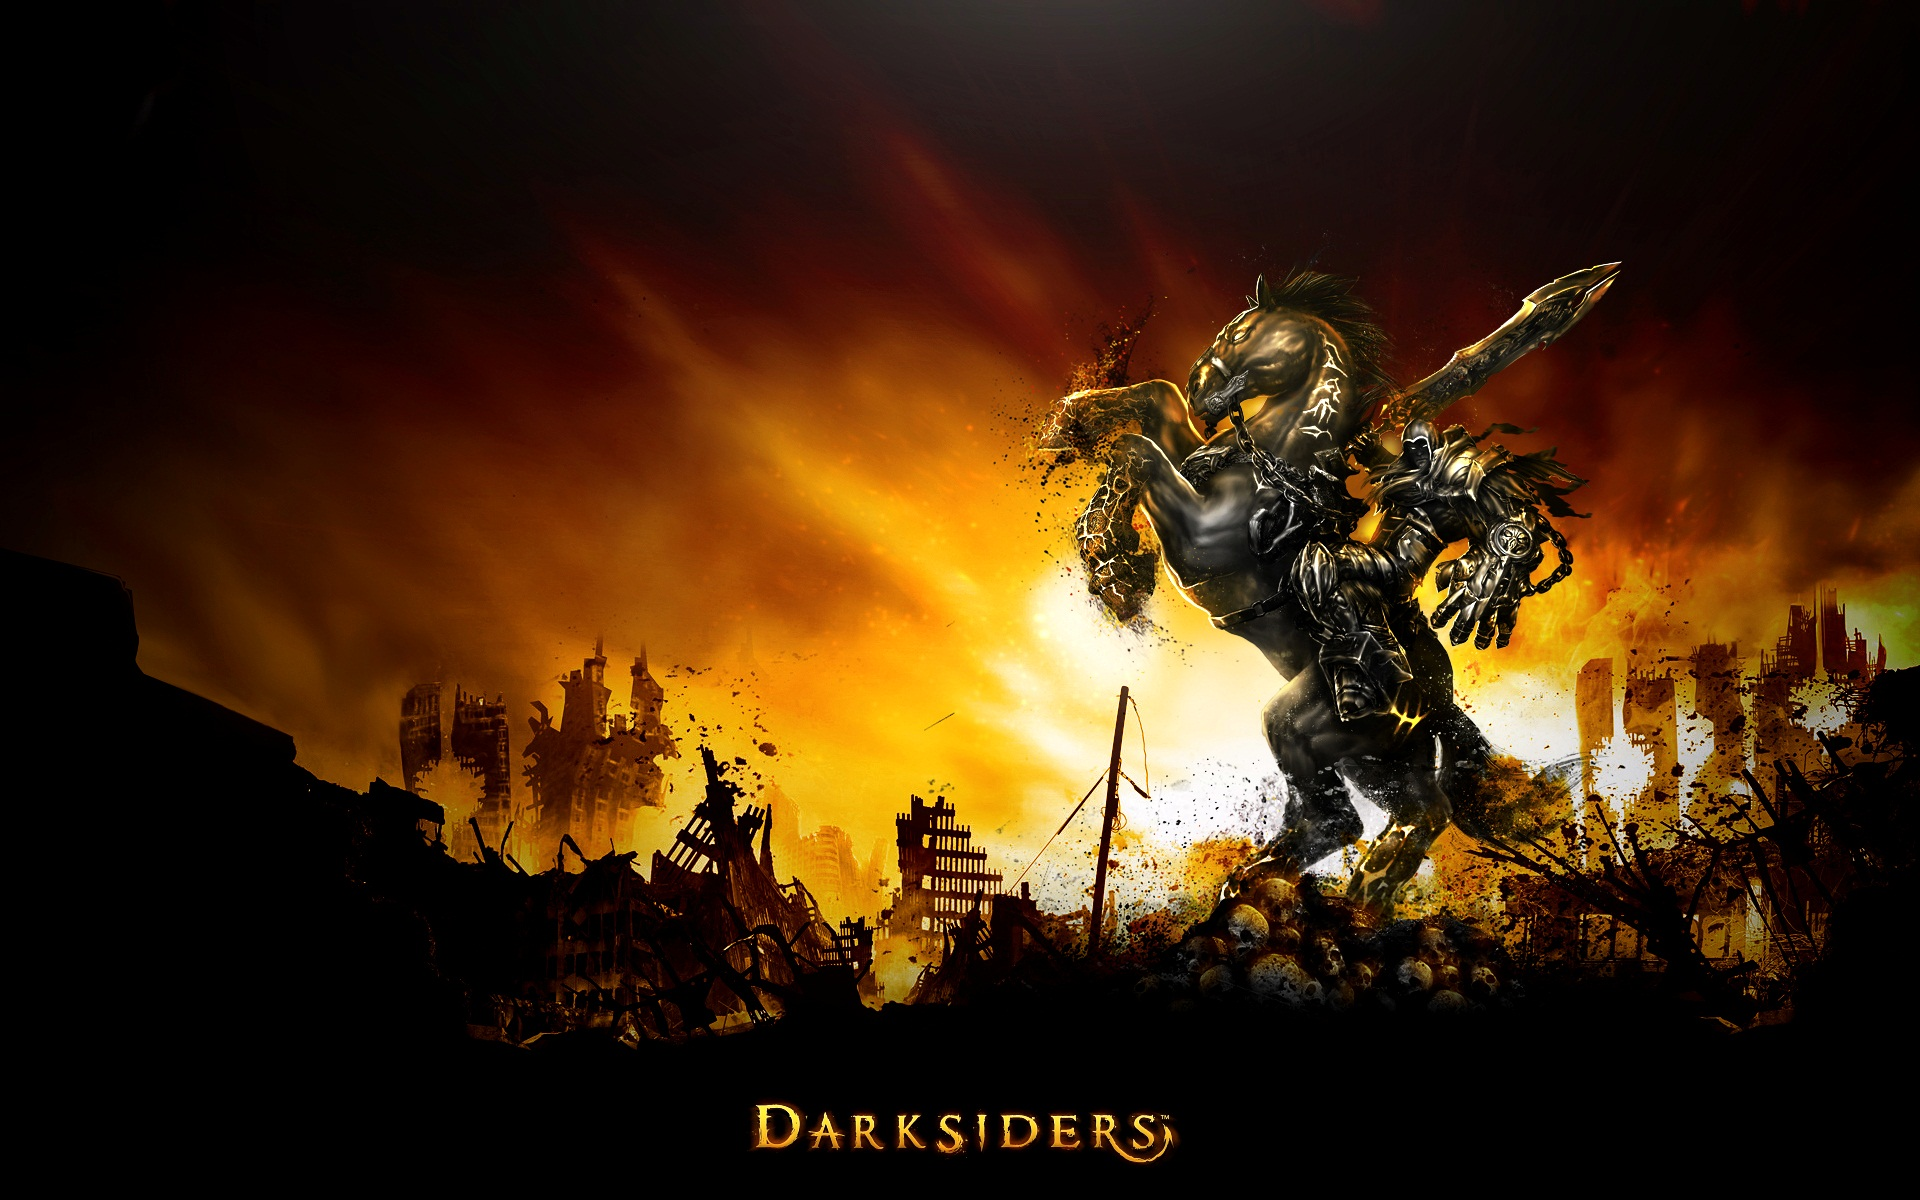 Darksiders 23901 wallpaper